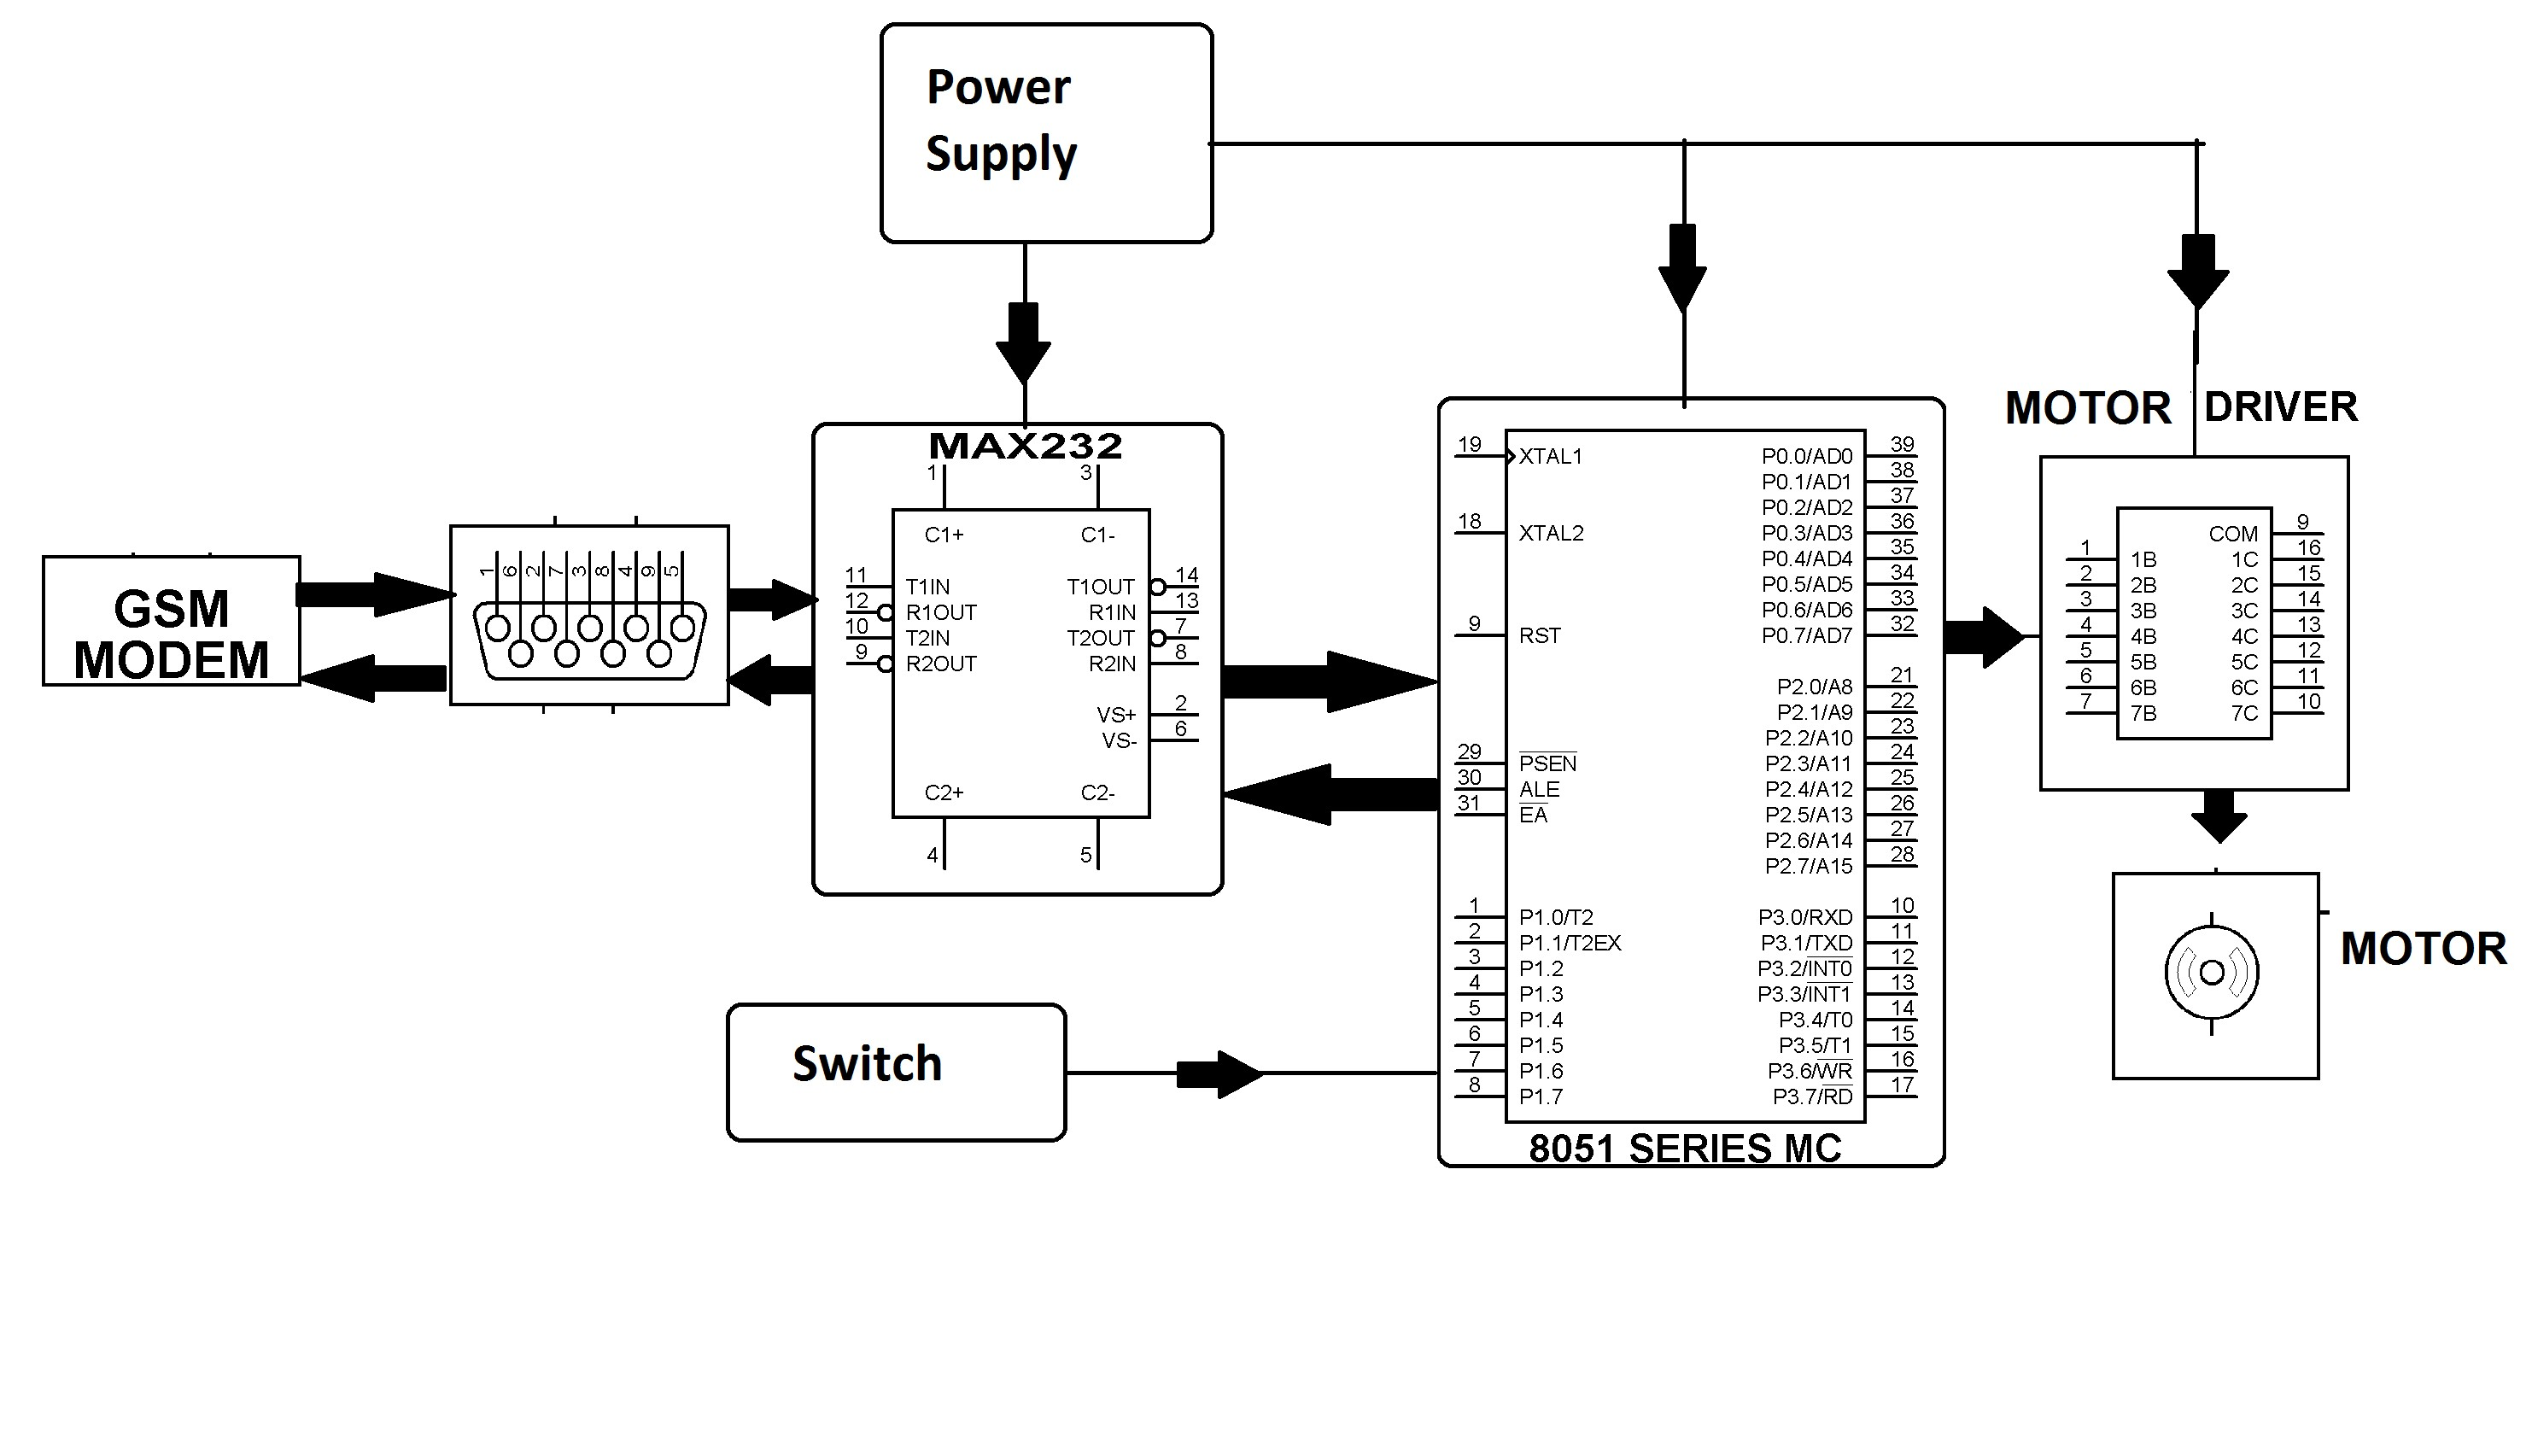 Car Ignition Circuit Diagram Vehicle theft Detection Notification and Remote Engine Locking Of Car Ignition Circuit Diagram